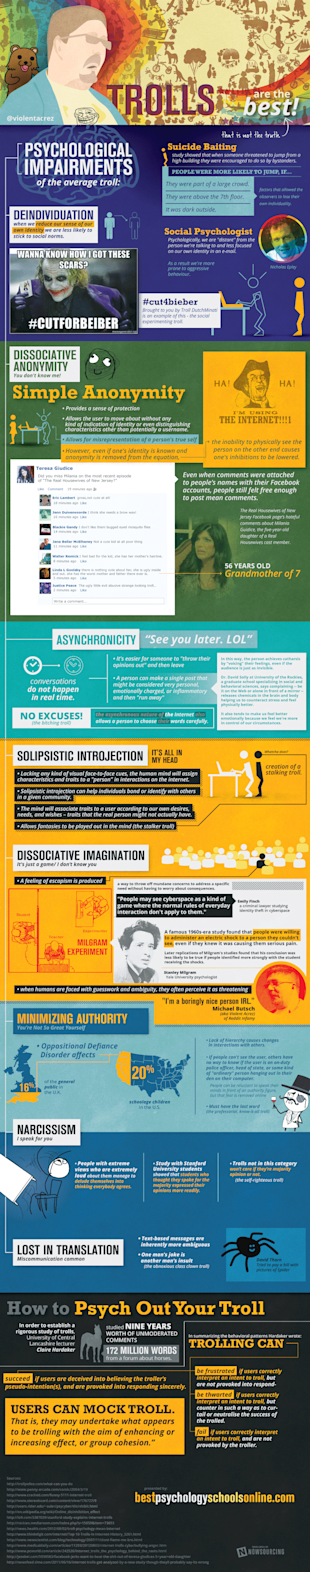 The Psyche of an Internet Troll [Infographic] image internet trolls